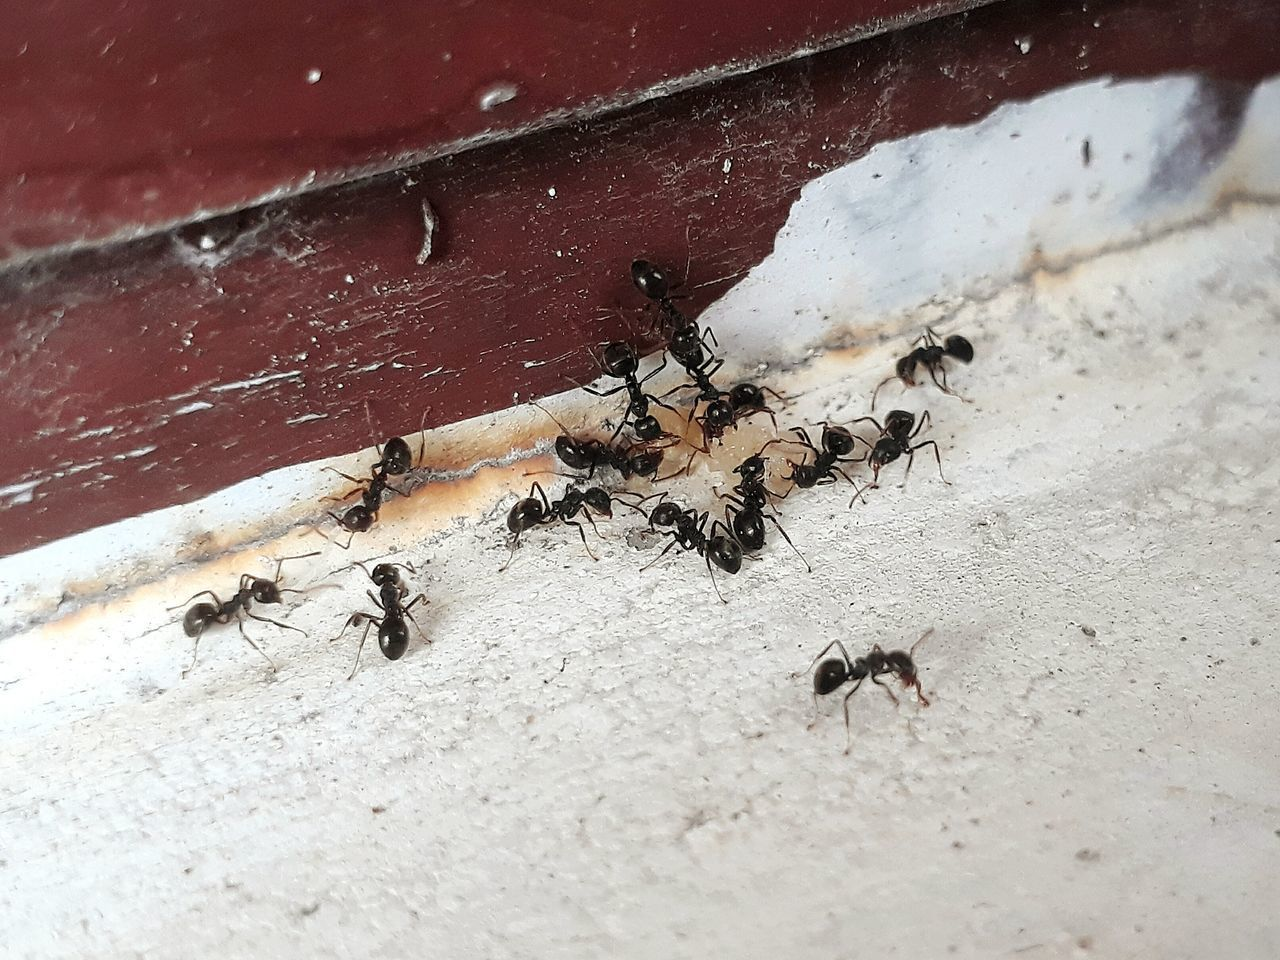 animals in the wild, animal themes, insect, animal wildlife, ant, day, high angle view, outdoors, no people, colony, large group of animals, nature, close-up, bee, teamwork